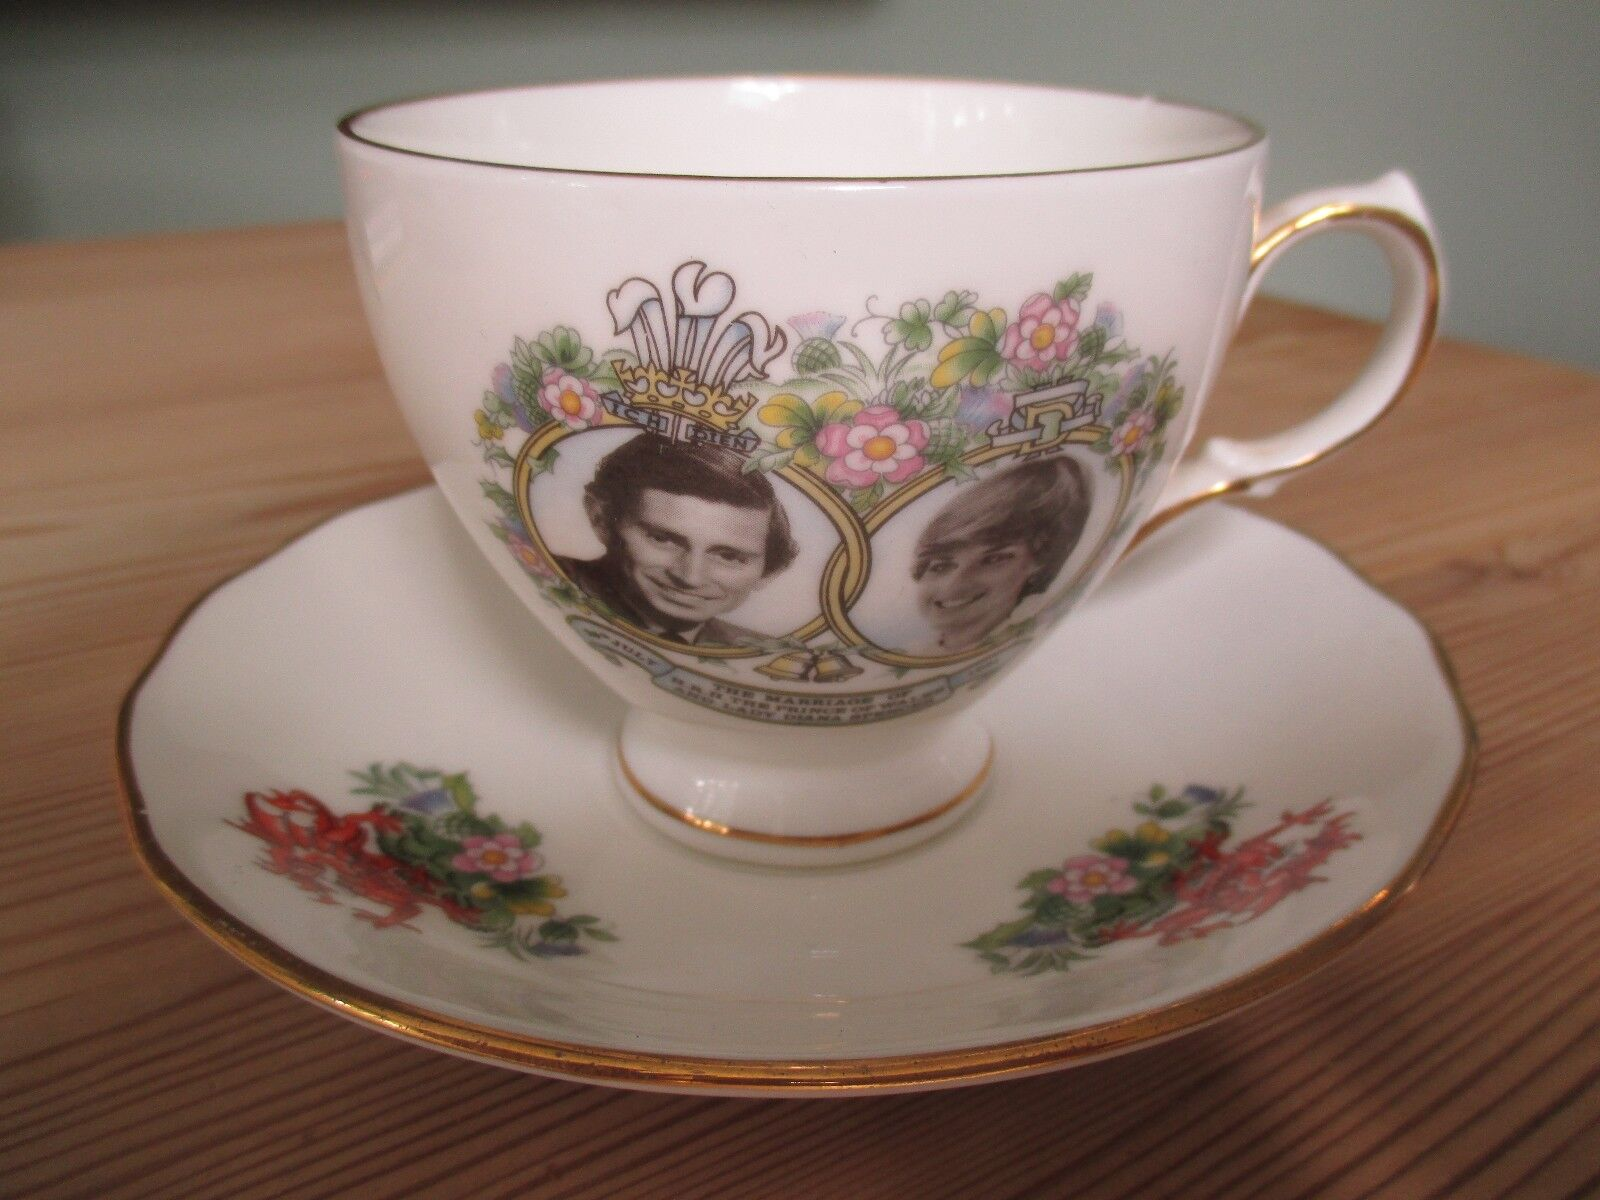 Royal Wedding - China Cup and Saucer - Charles and Diana